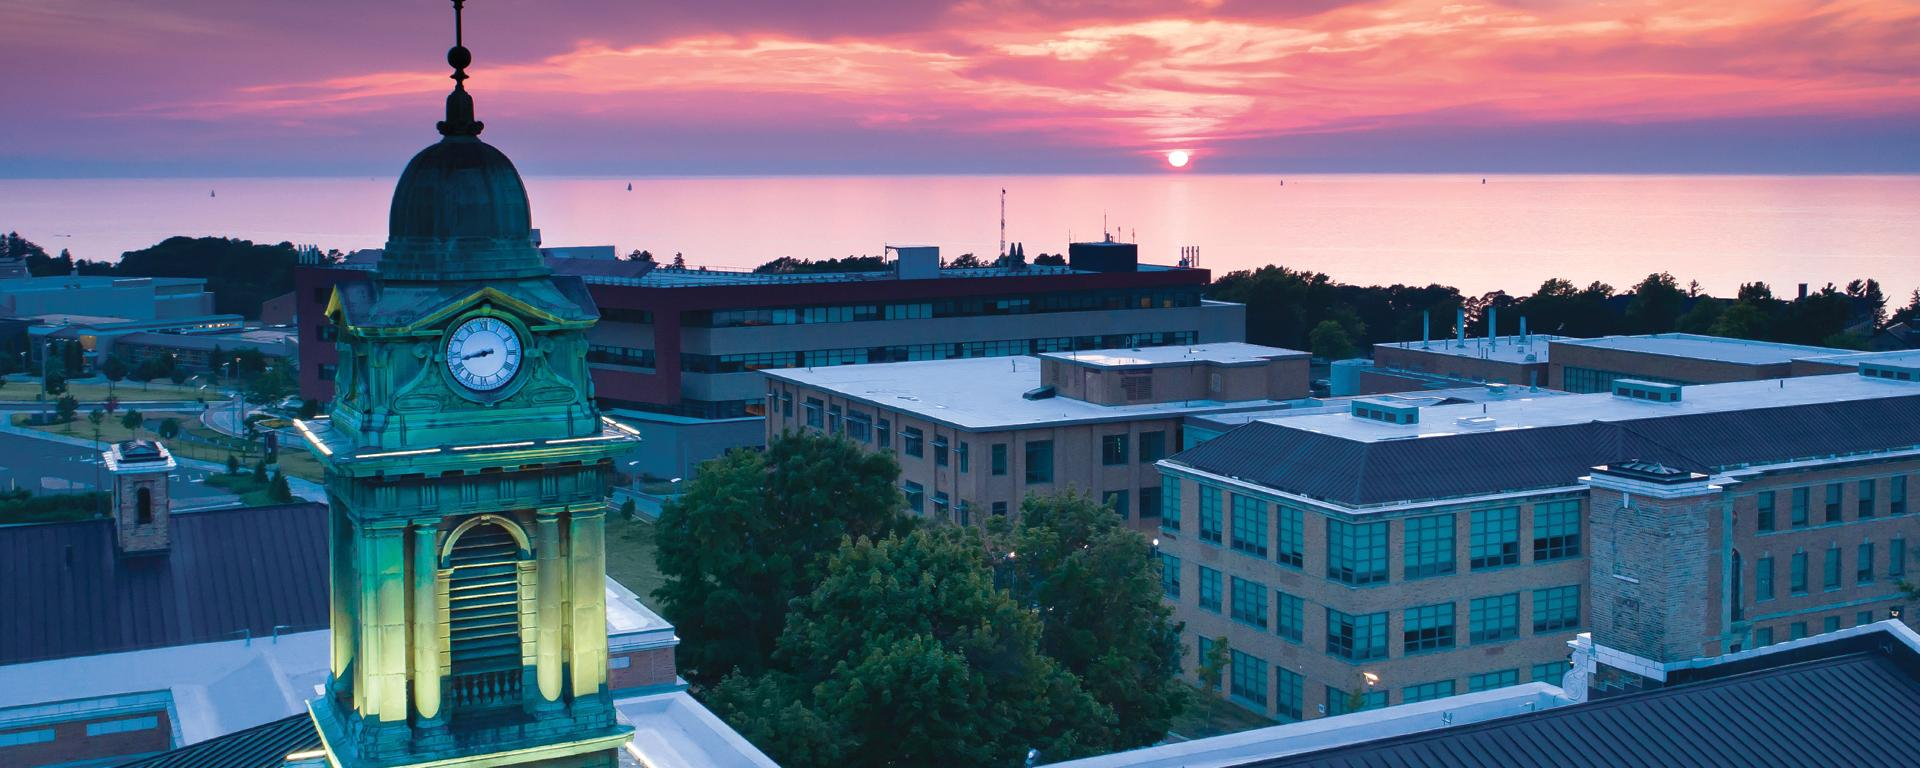 Aerial view of Sheldon Hall in front of a sunset